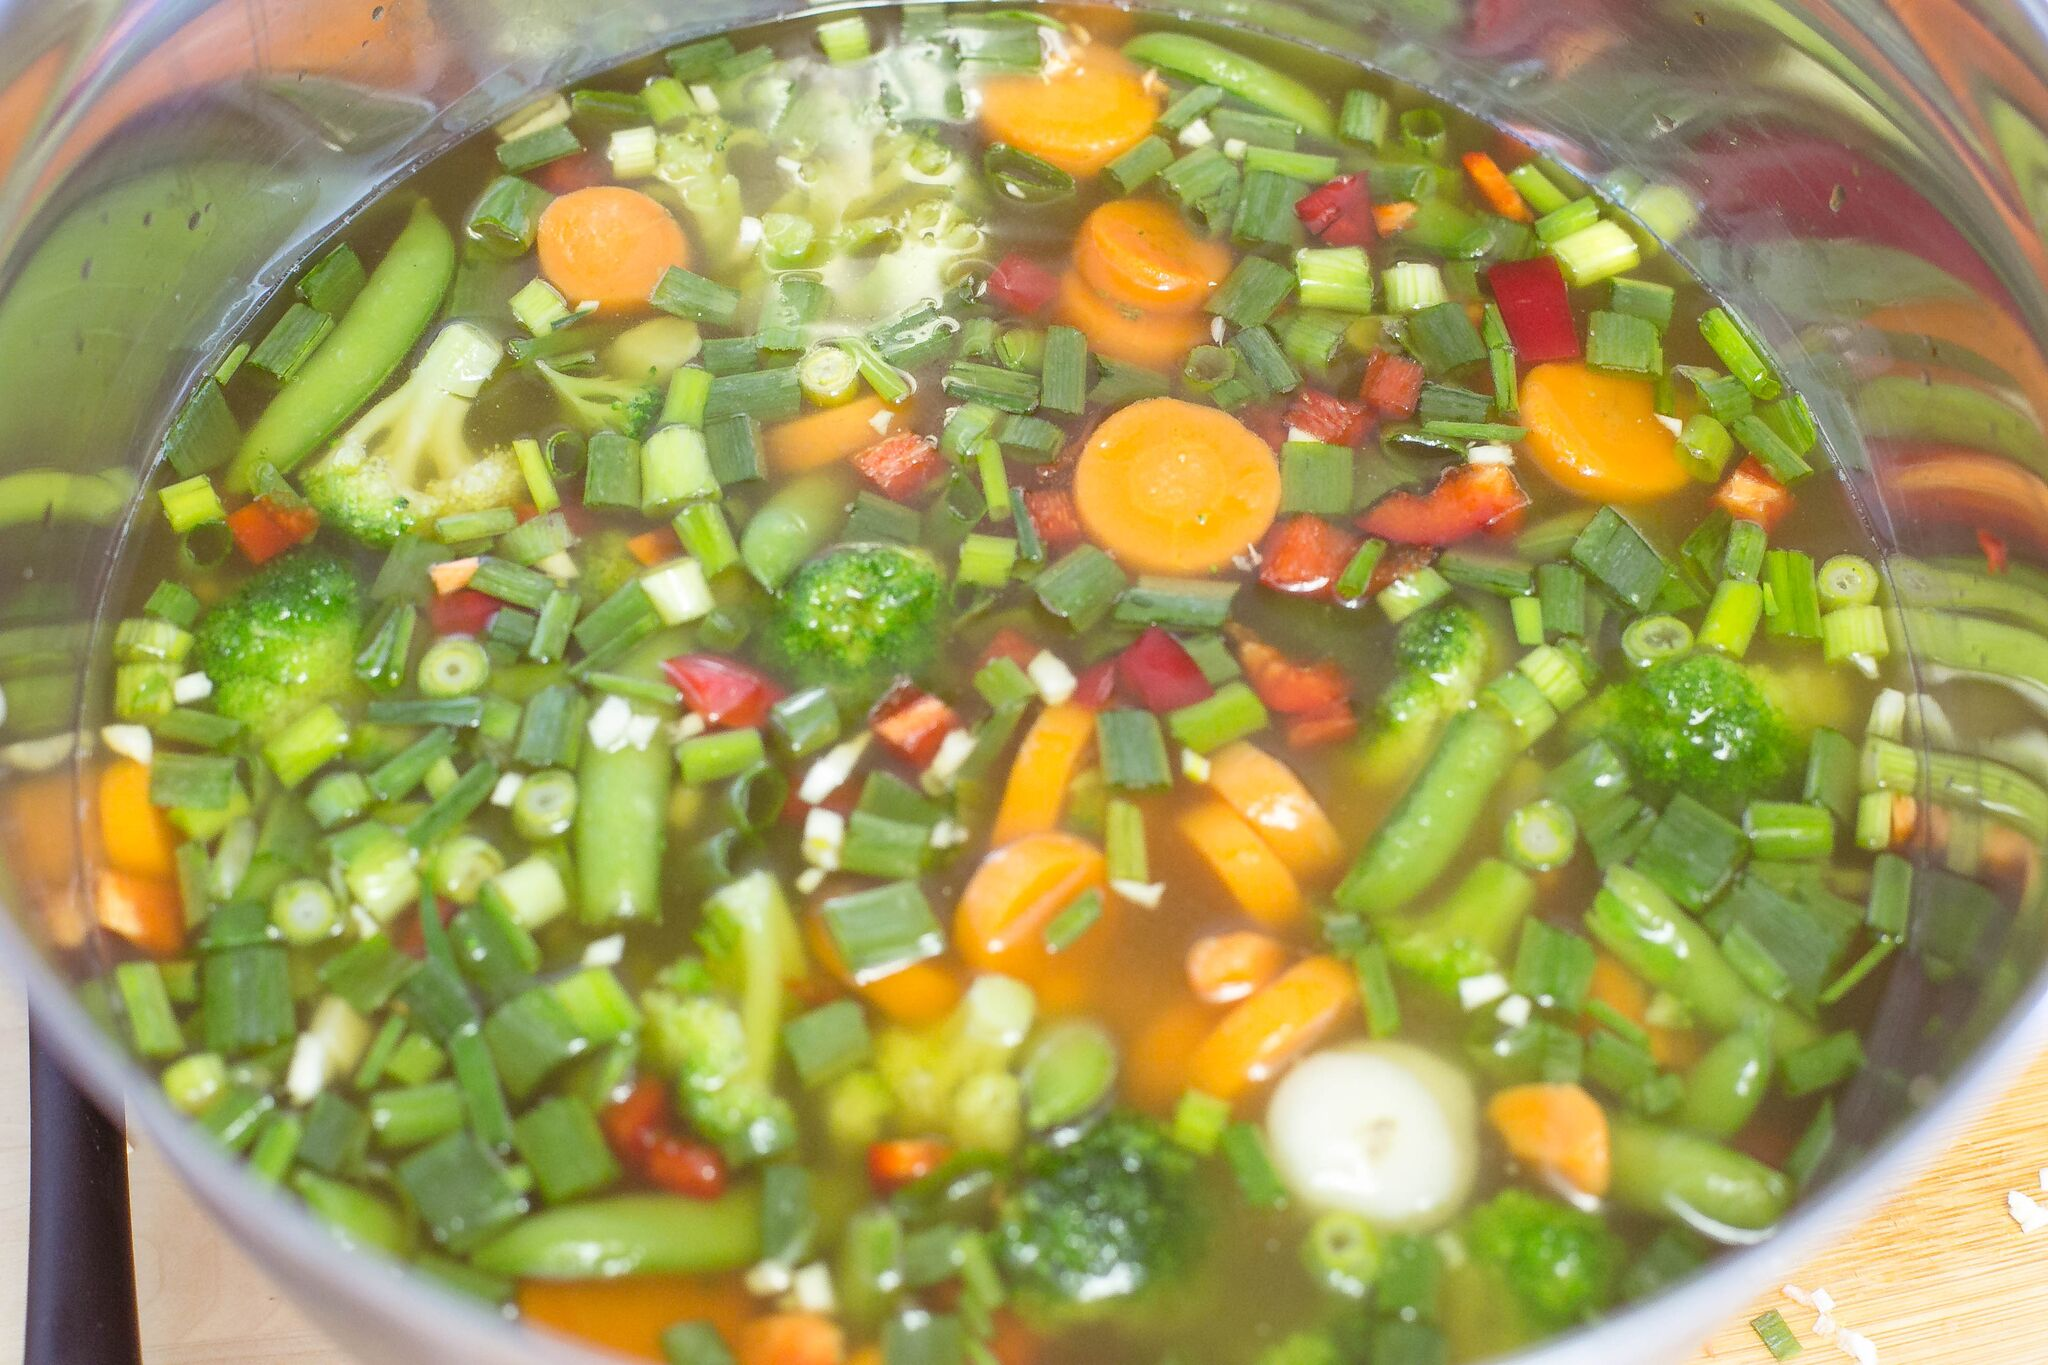 In a large bowl mix together stock, green onions, red pepper, garlic, frozen vegetables and soy sauce.